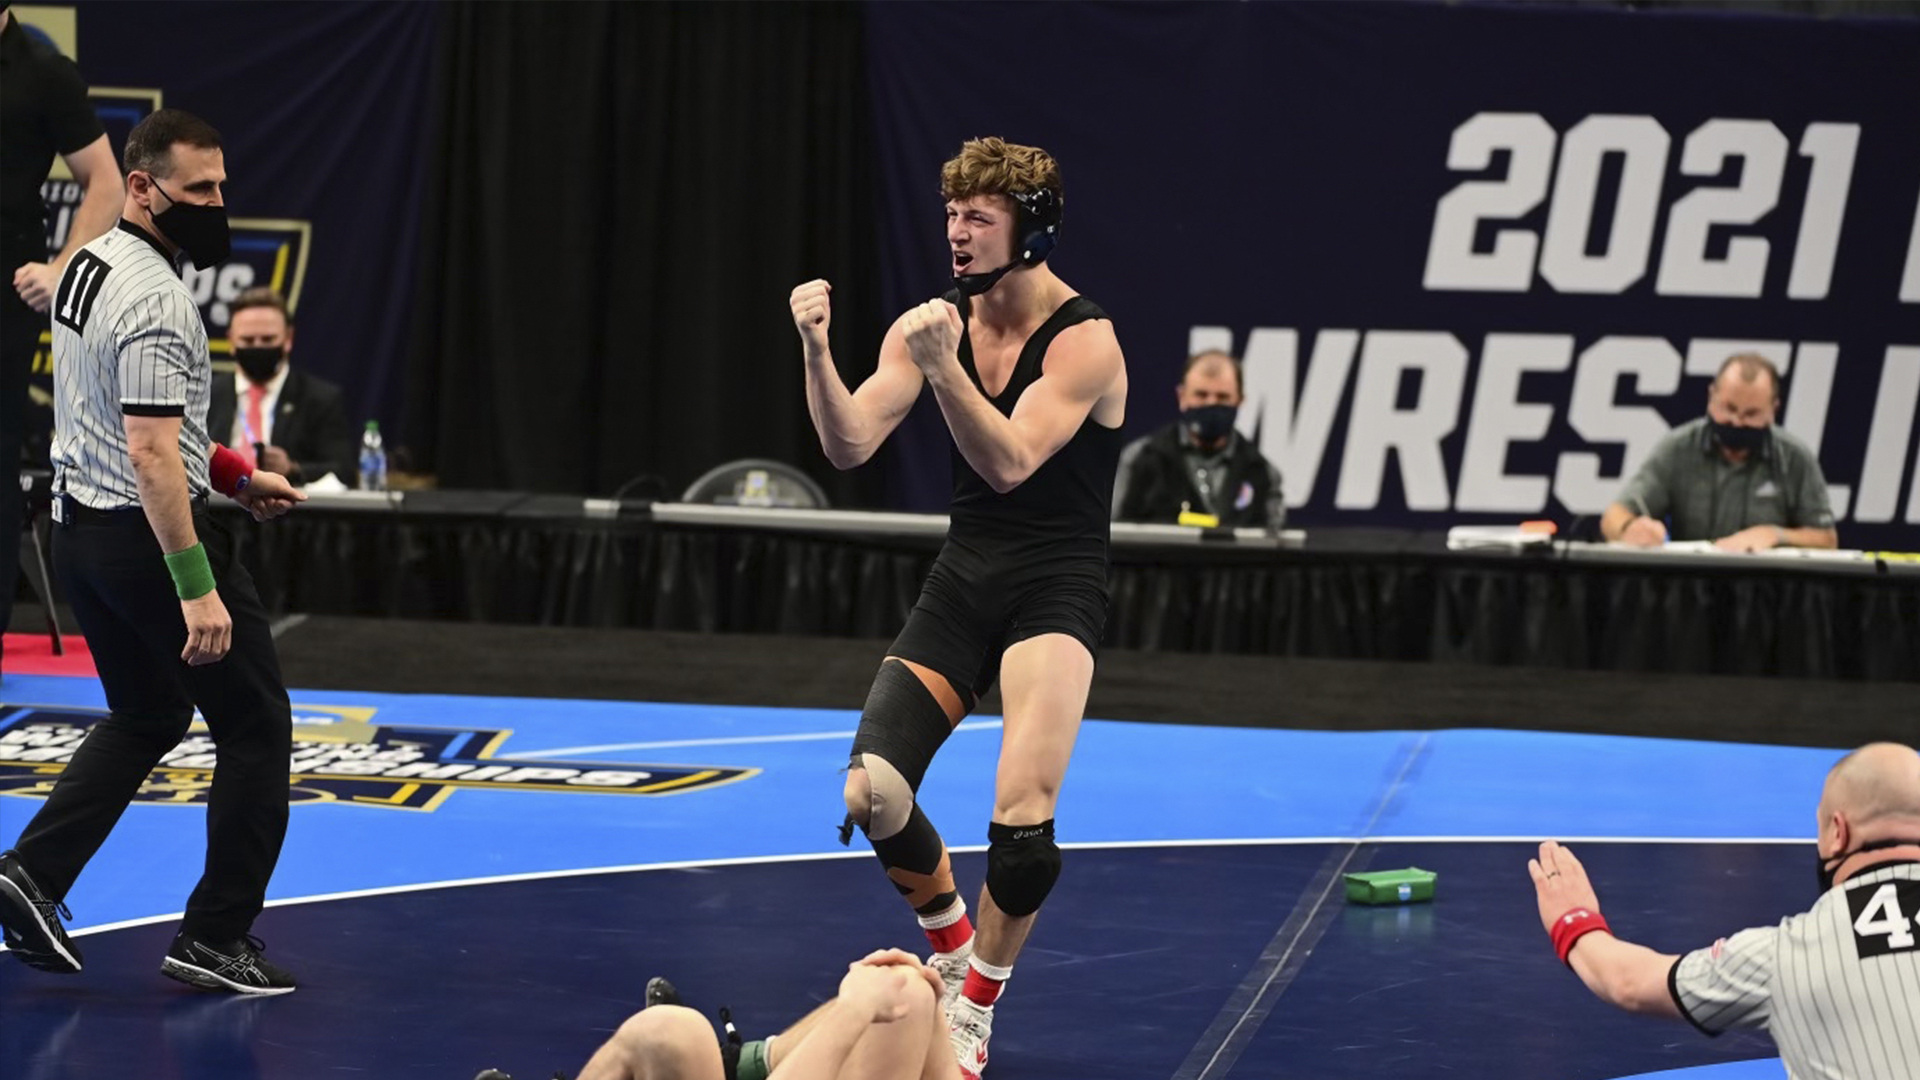 Shane Griffith celebrates at the NCAA Wrestling National Championships.